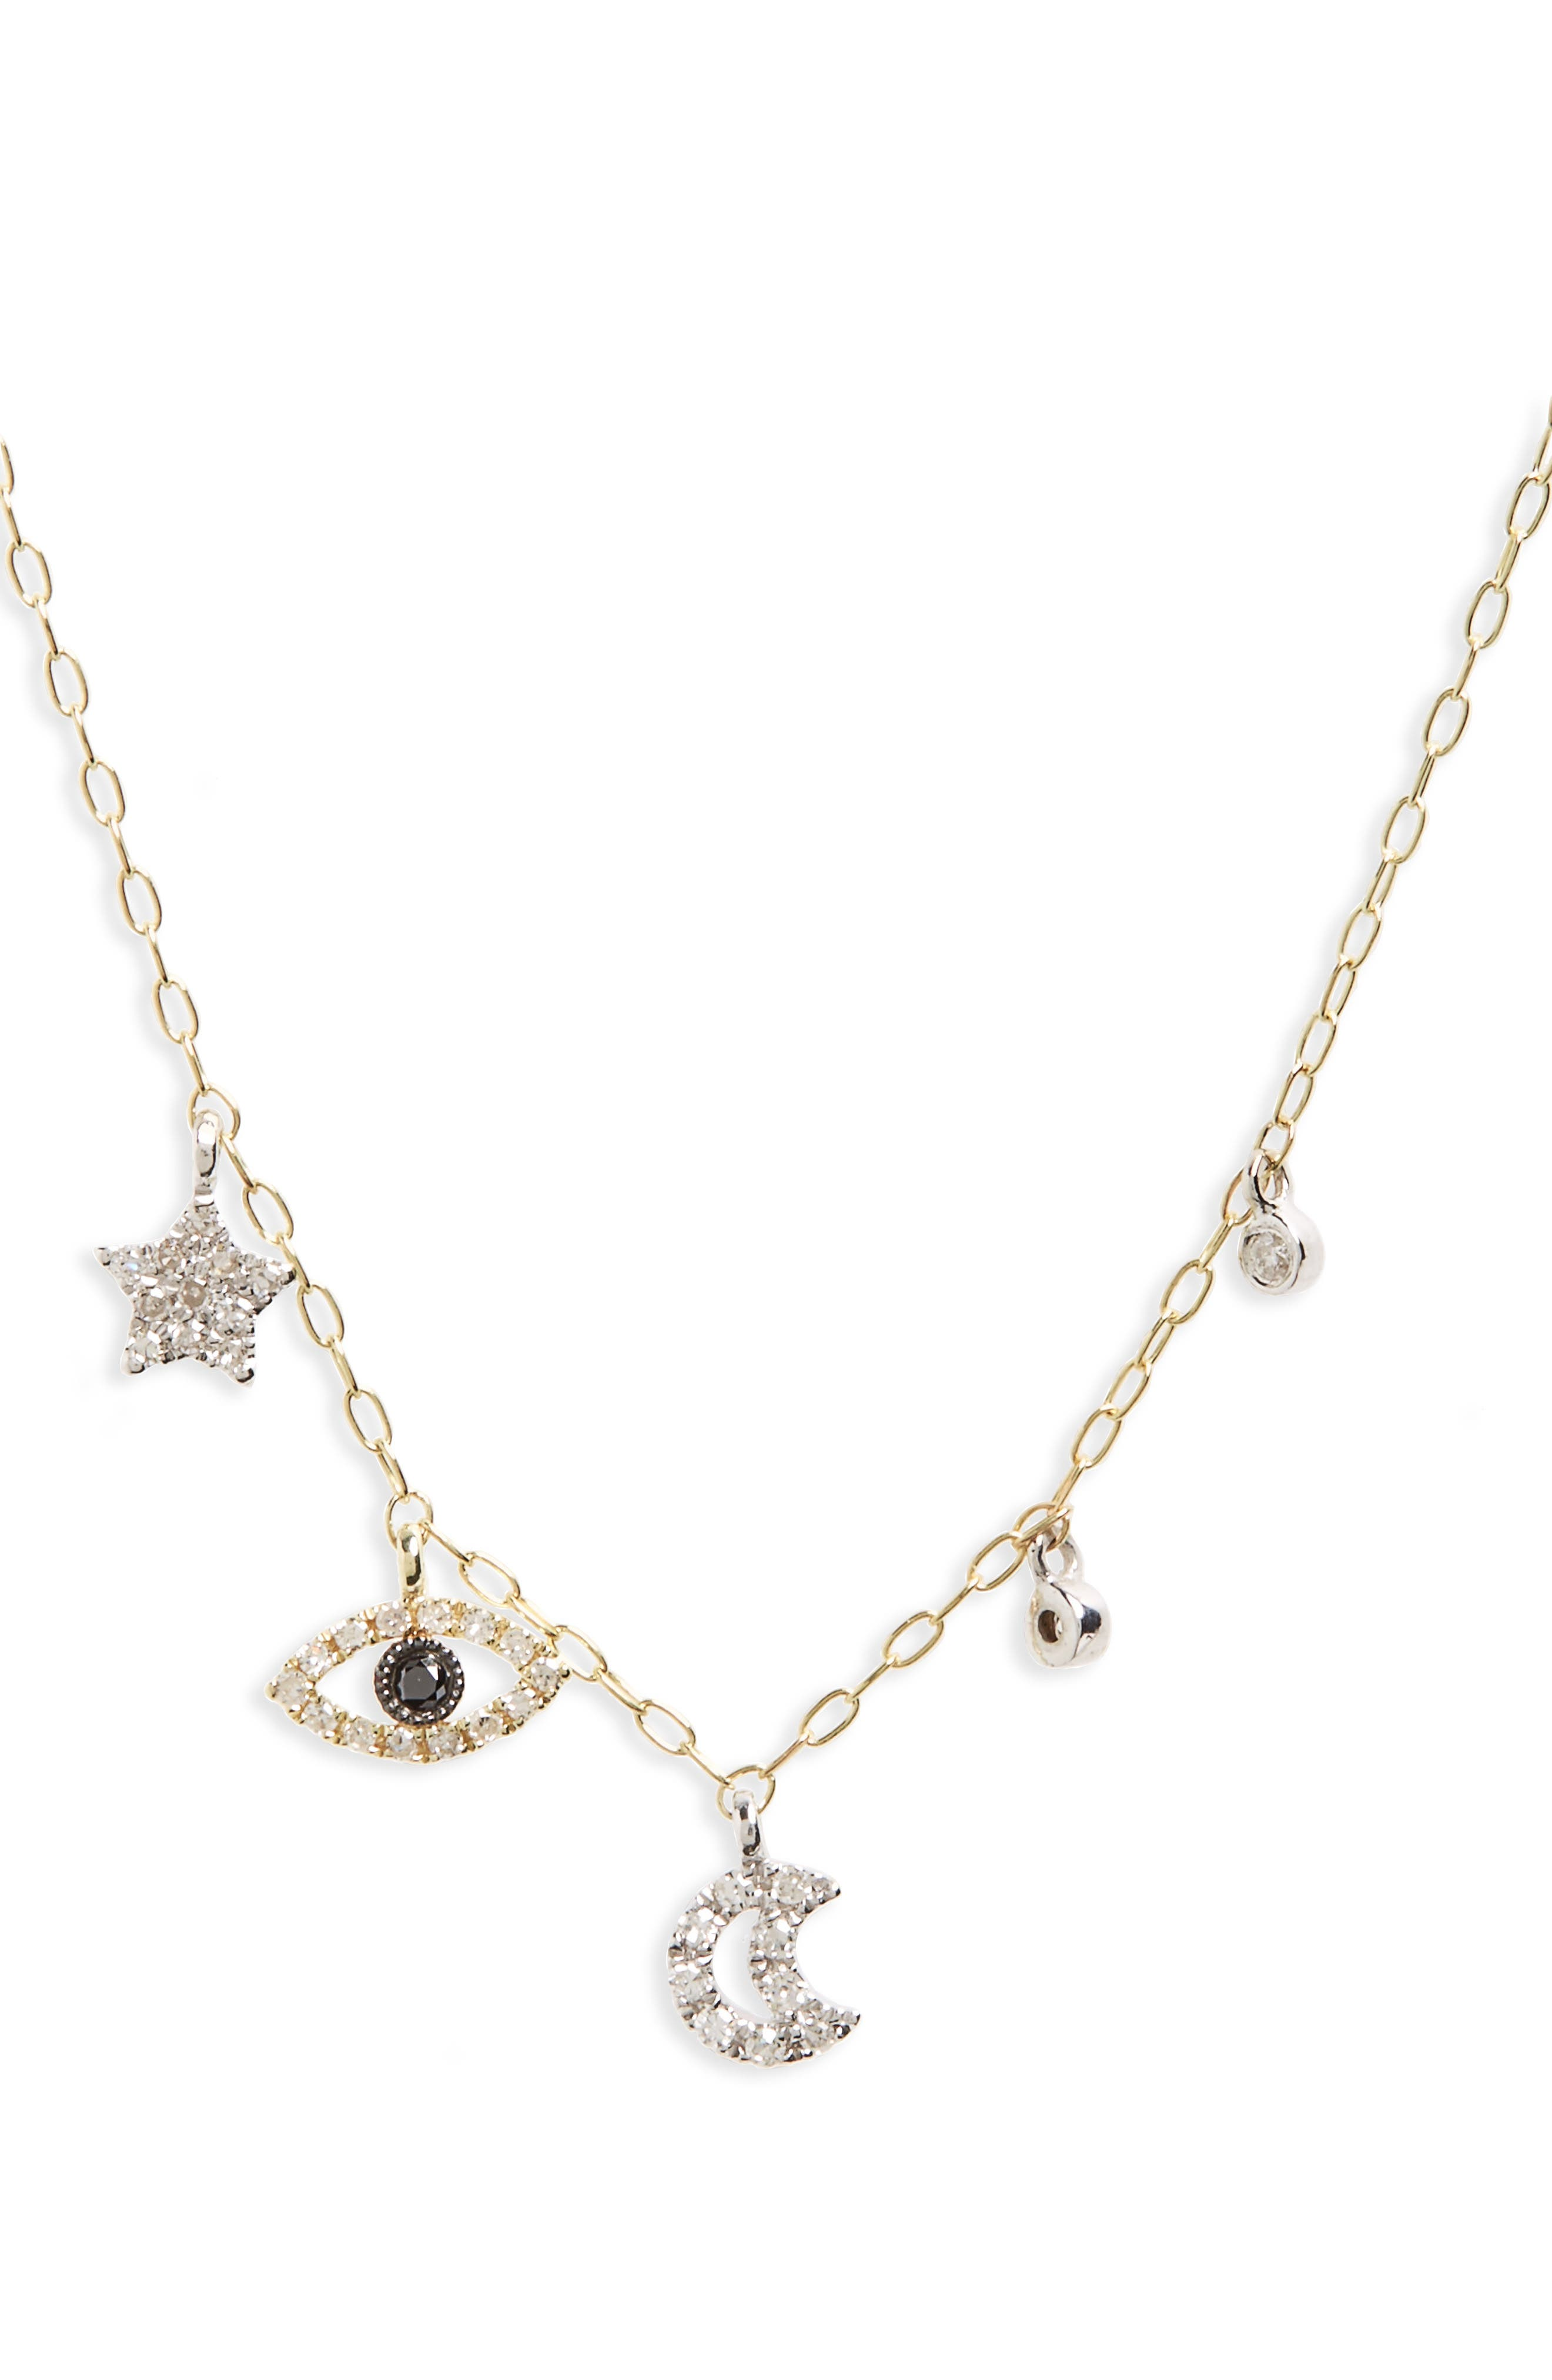 Diamond Charm Necklace,                         Main,                         color, YELLOW GOLD